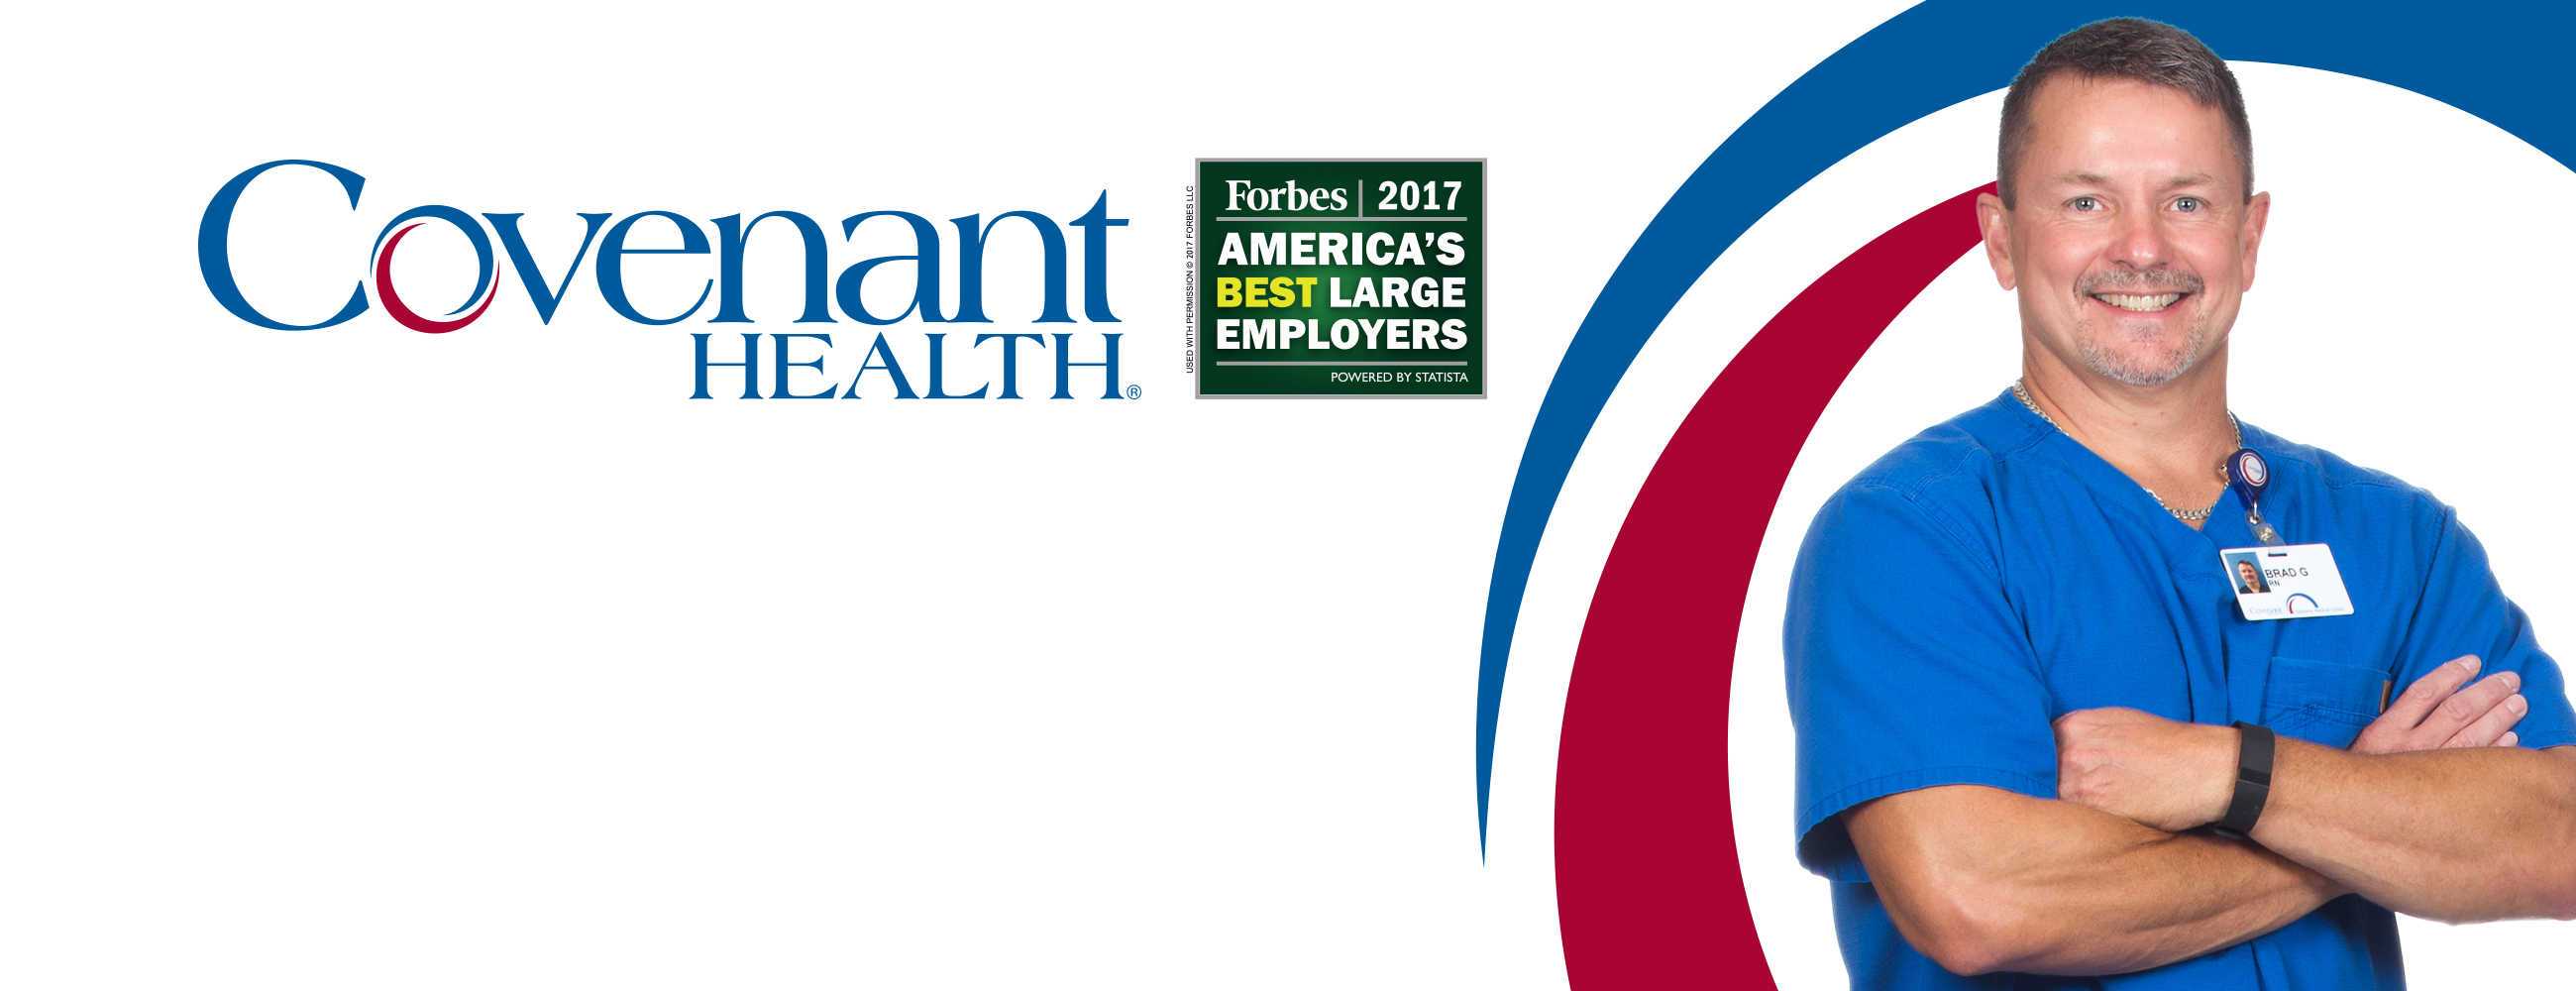 Welcome to Covenant Health | Covenant Health